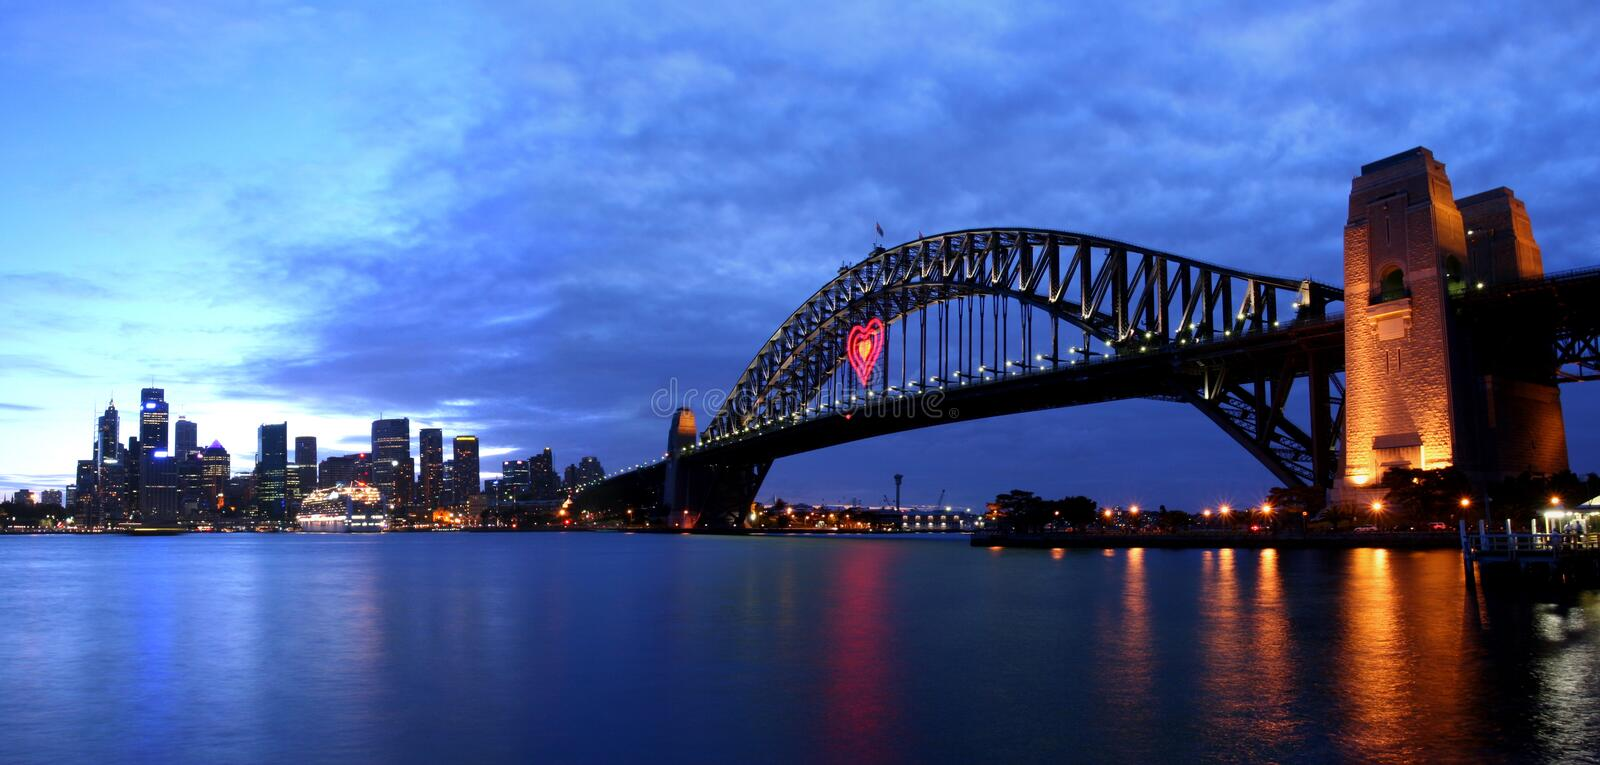 Sydney in Love. View of the Sydney Icon Harbour Bridge and the City in the evening